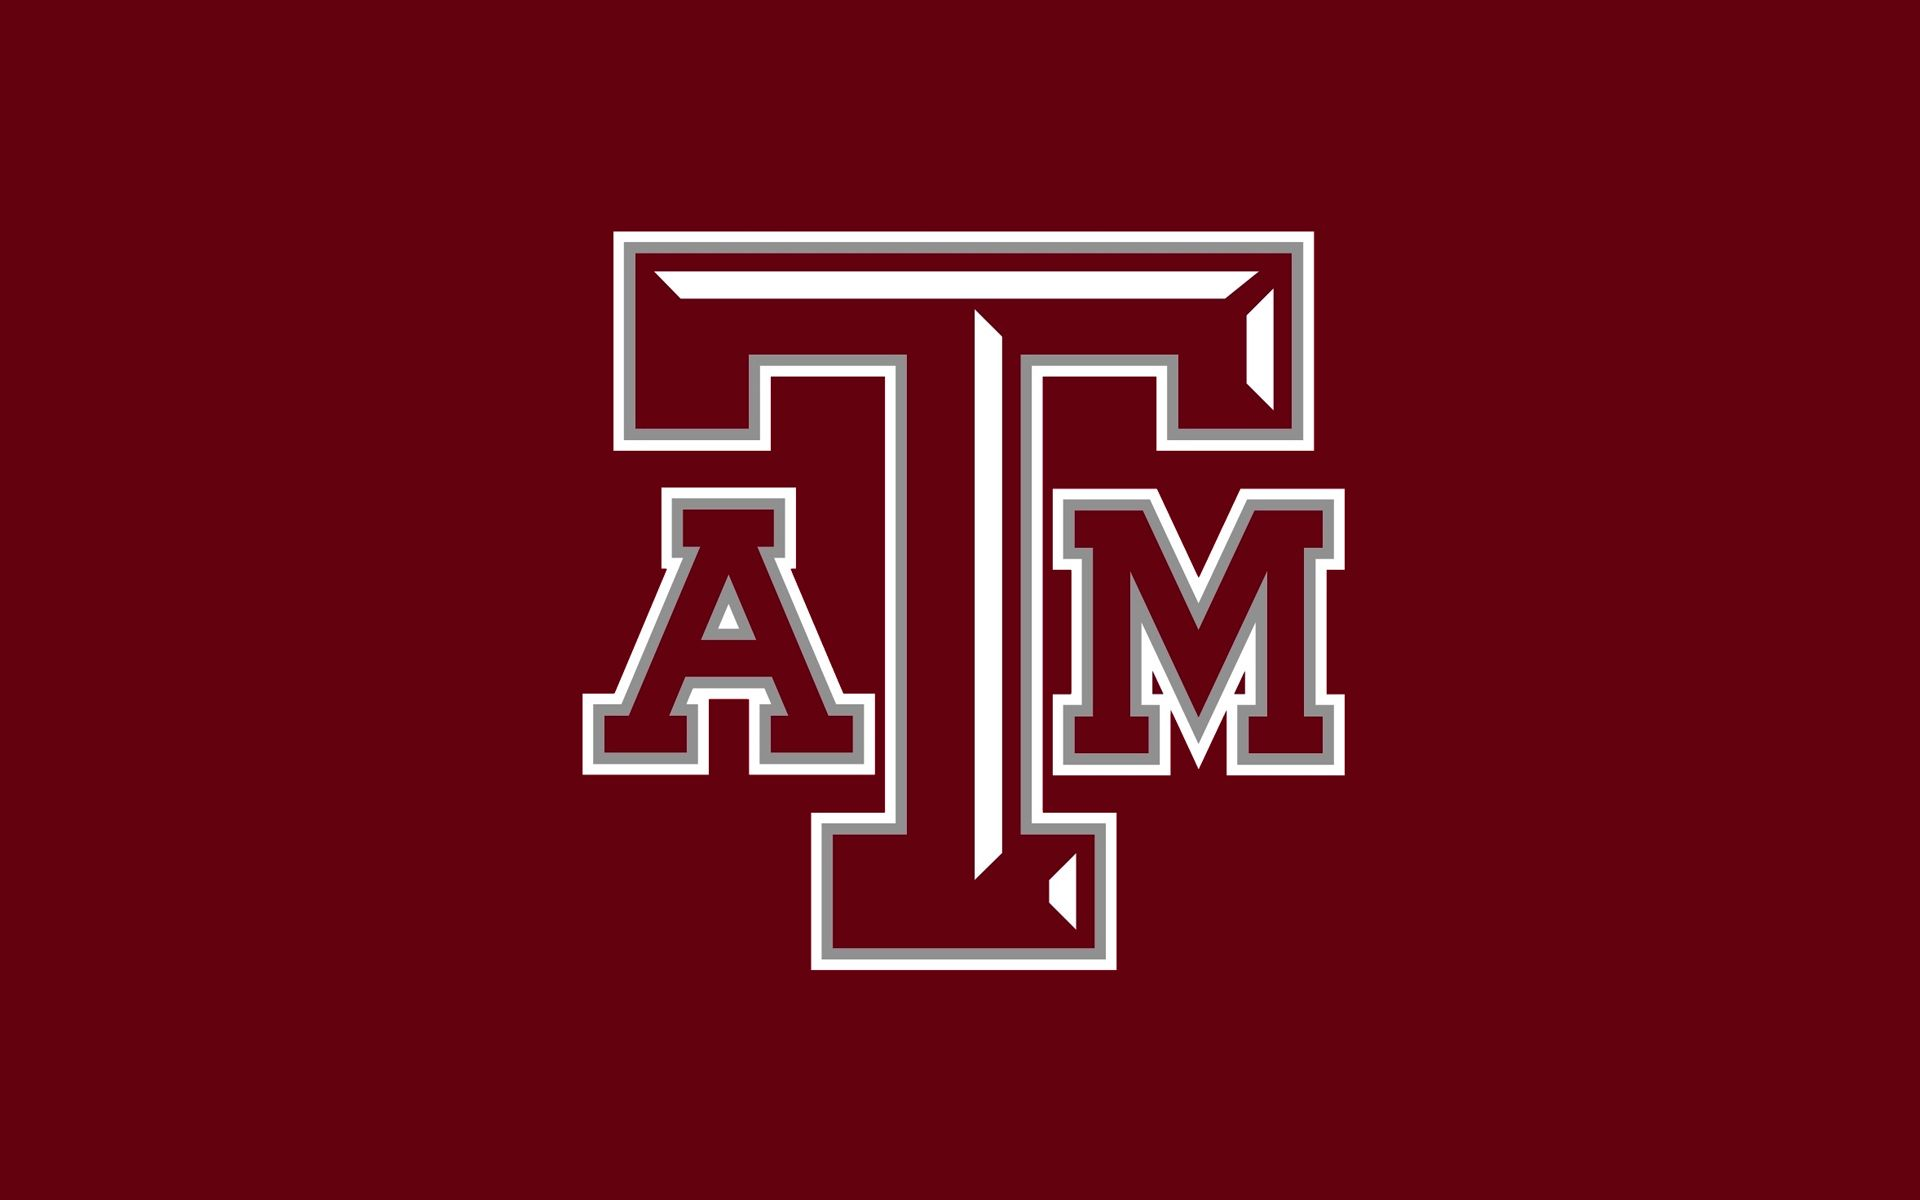 texas a&m origami